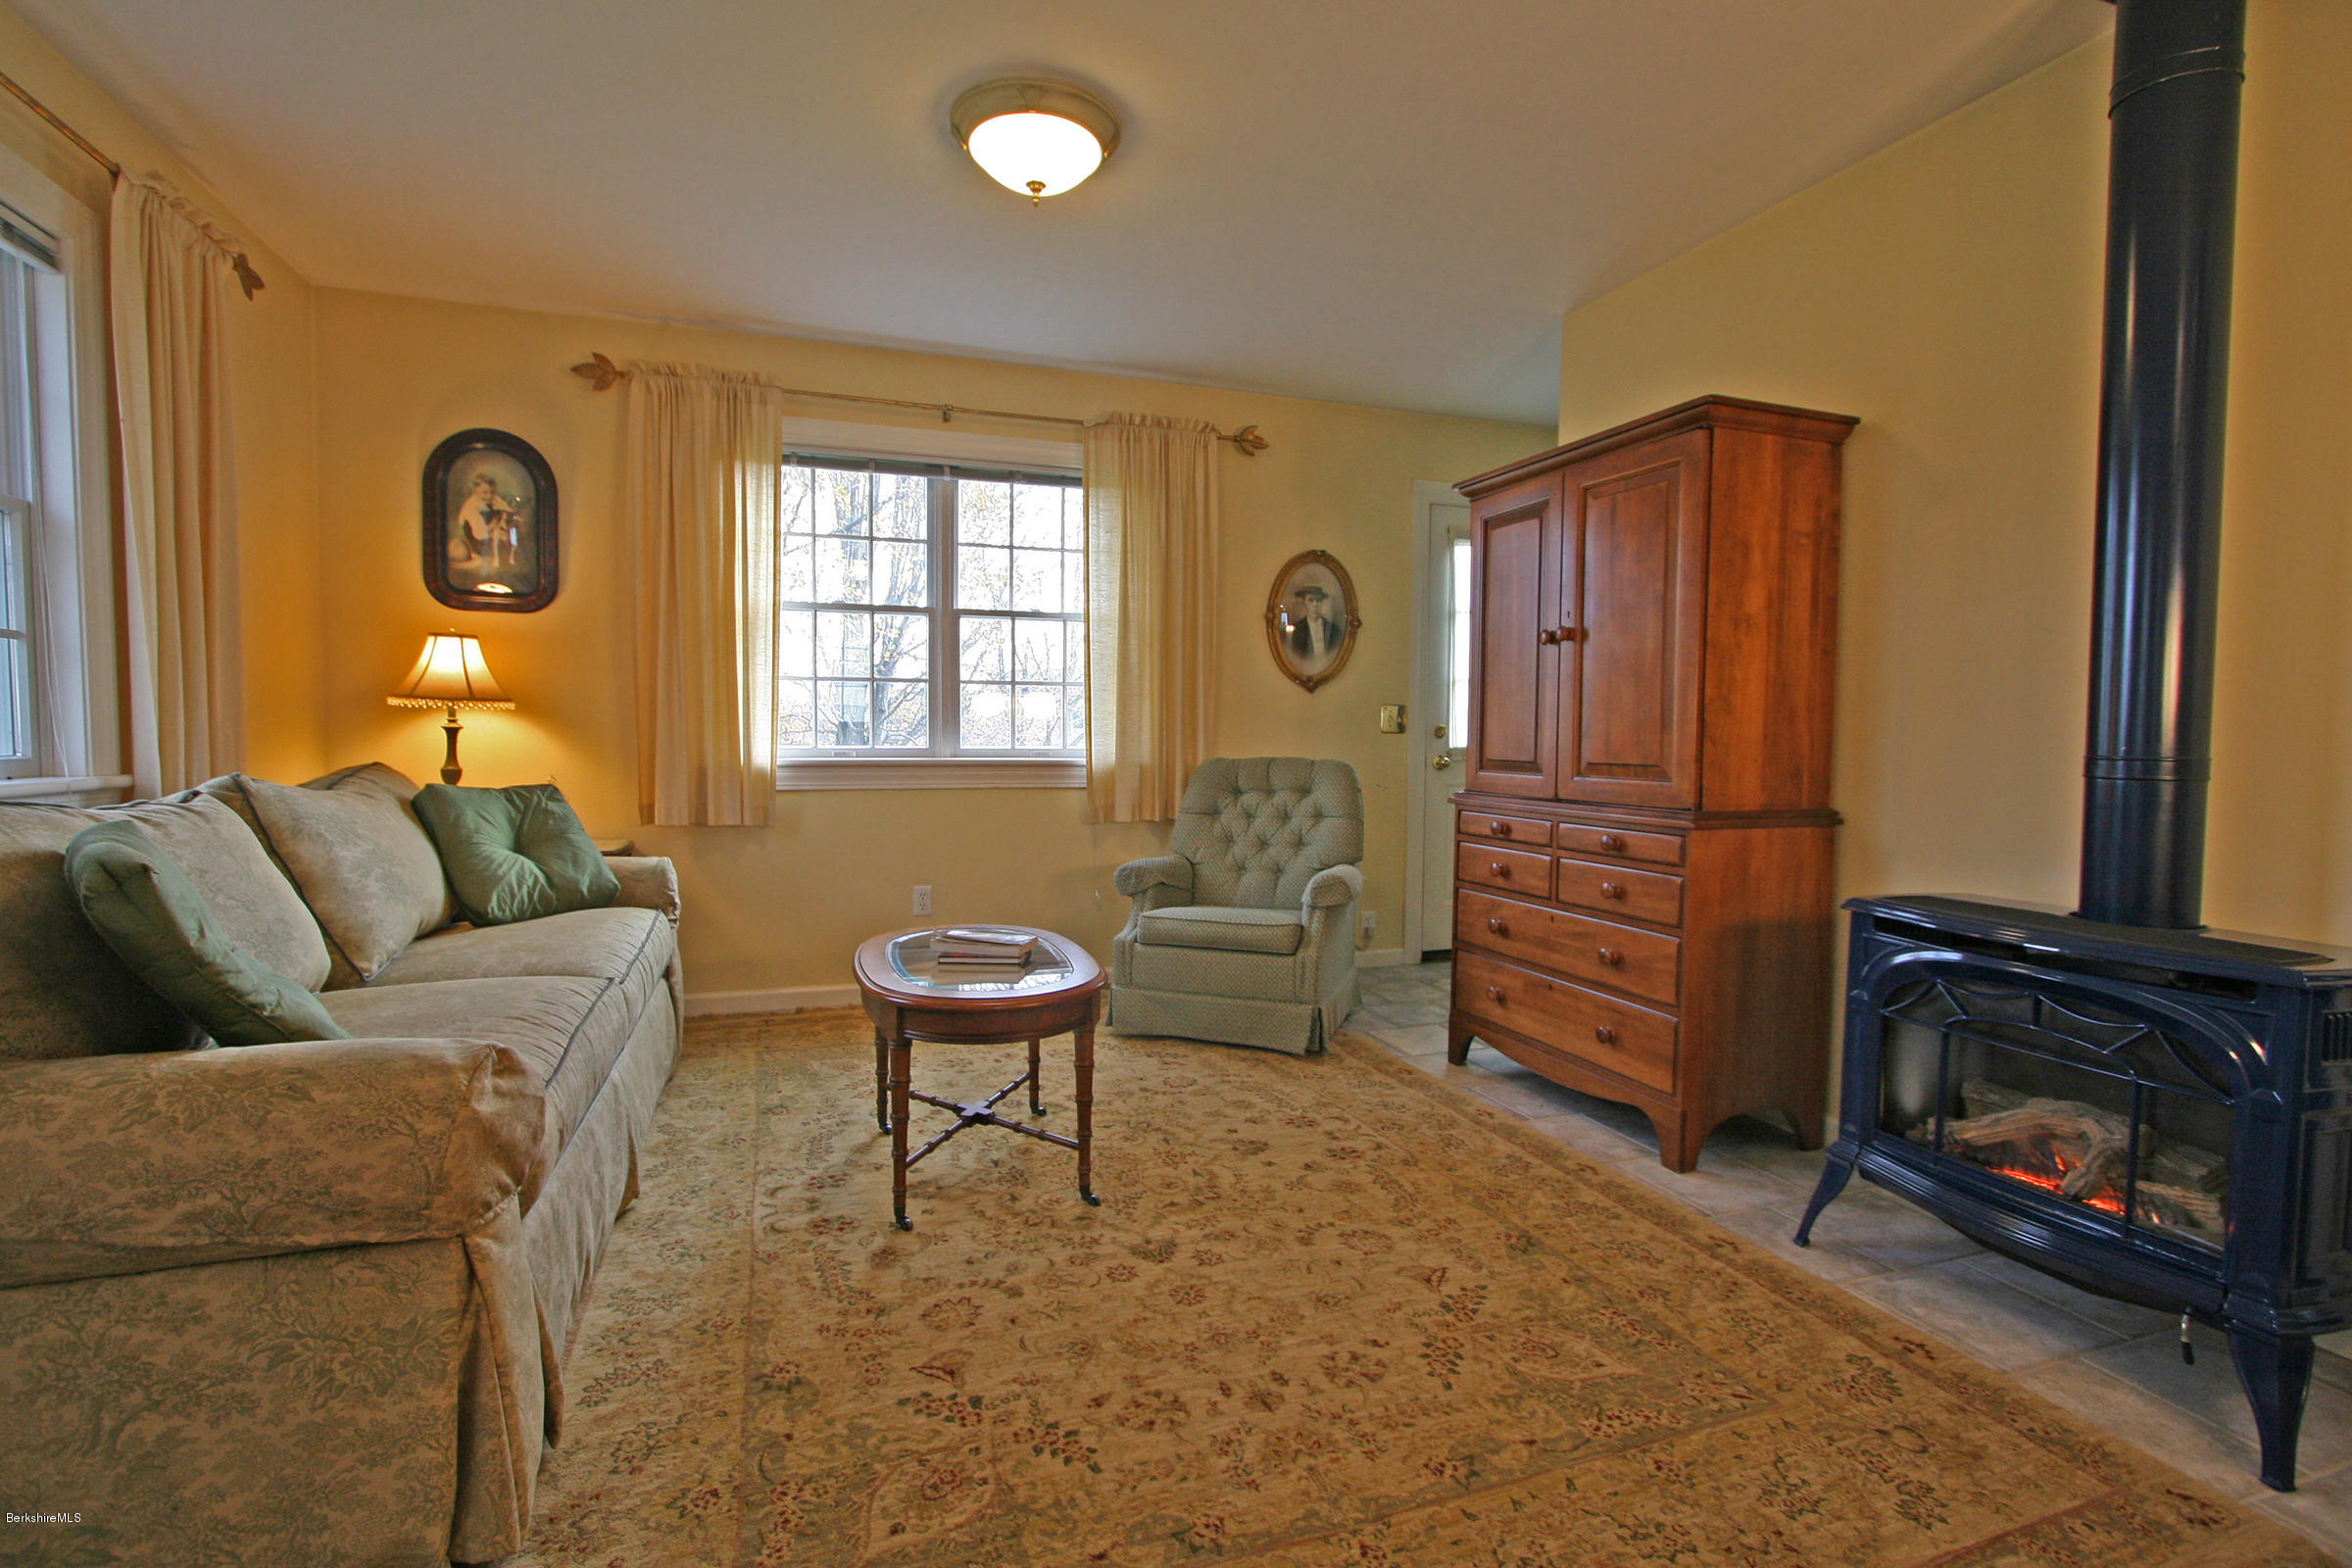 802 MA-41, Richmond, Massachusetts 01254, 7 Bedrooms Bedrooms, 20 Rooms Rooms,8 BathroomsBathrooms,Residential,For Sale,MA-41,232610